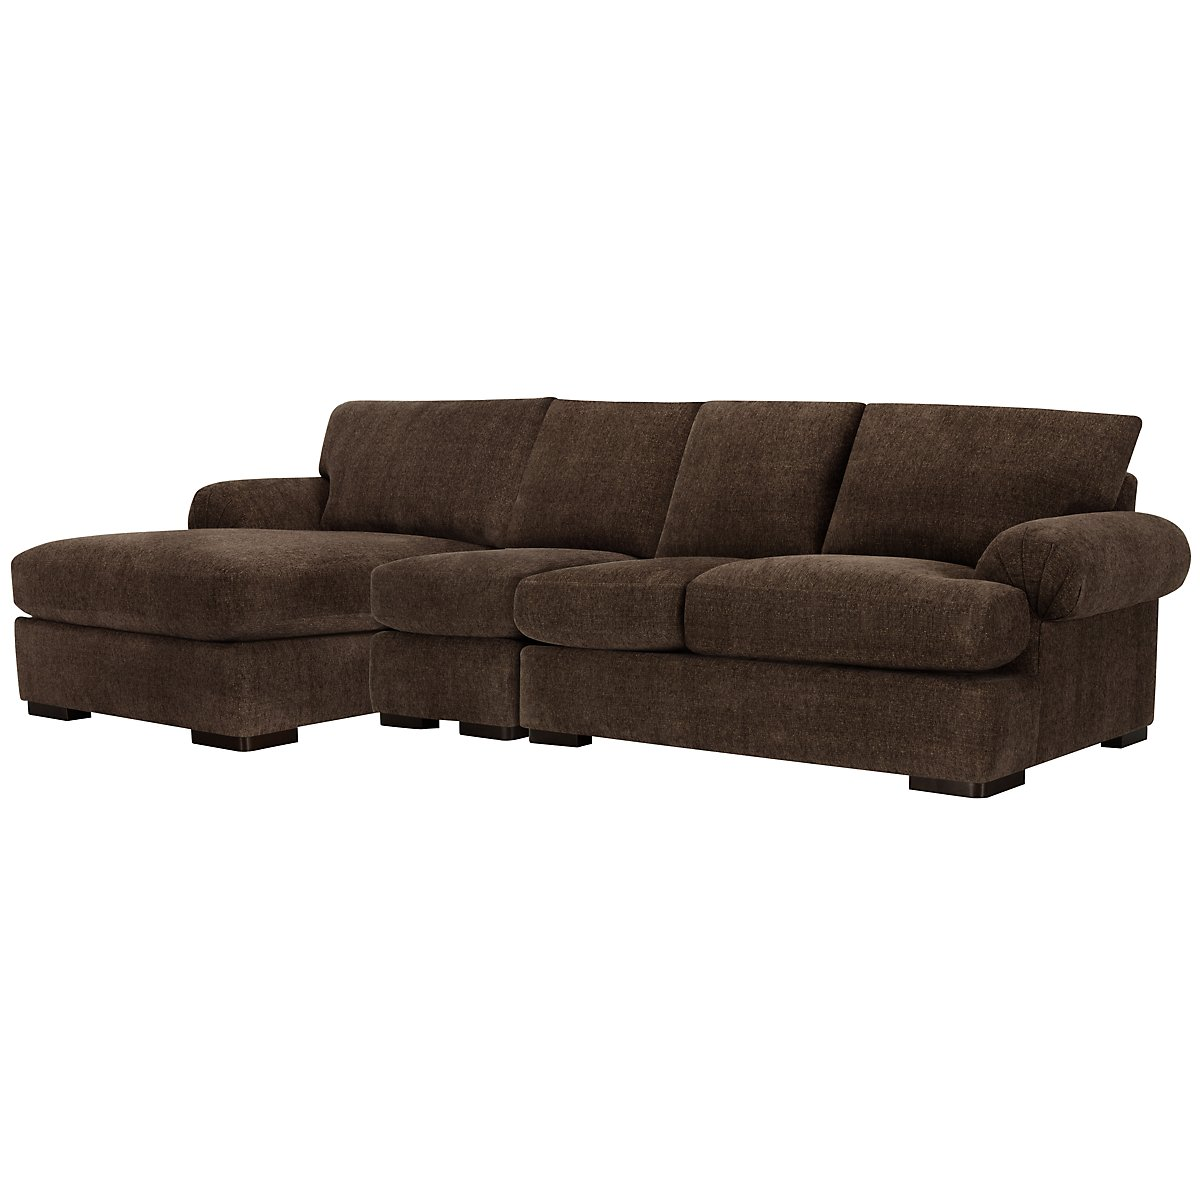 Belair Dark Brown Fabric Small Left Chaise Sectional